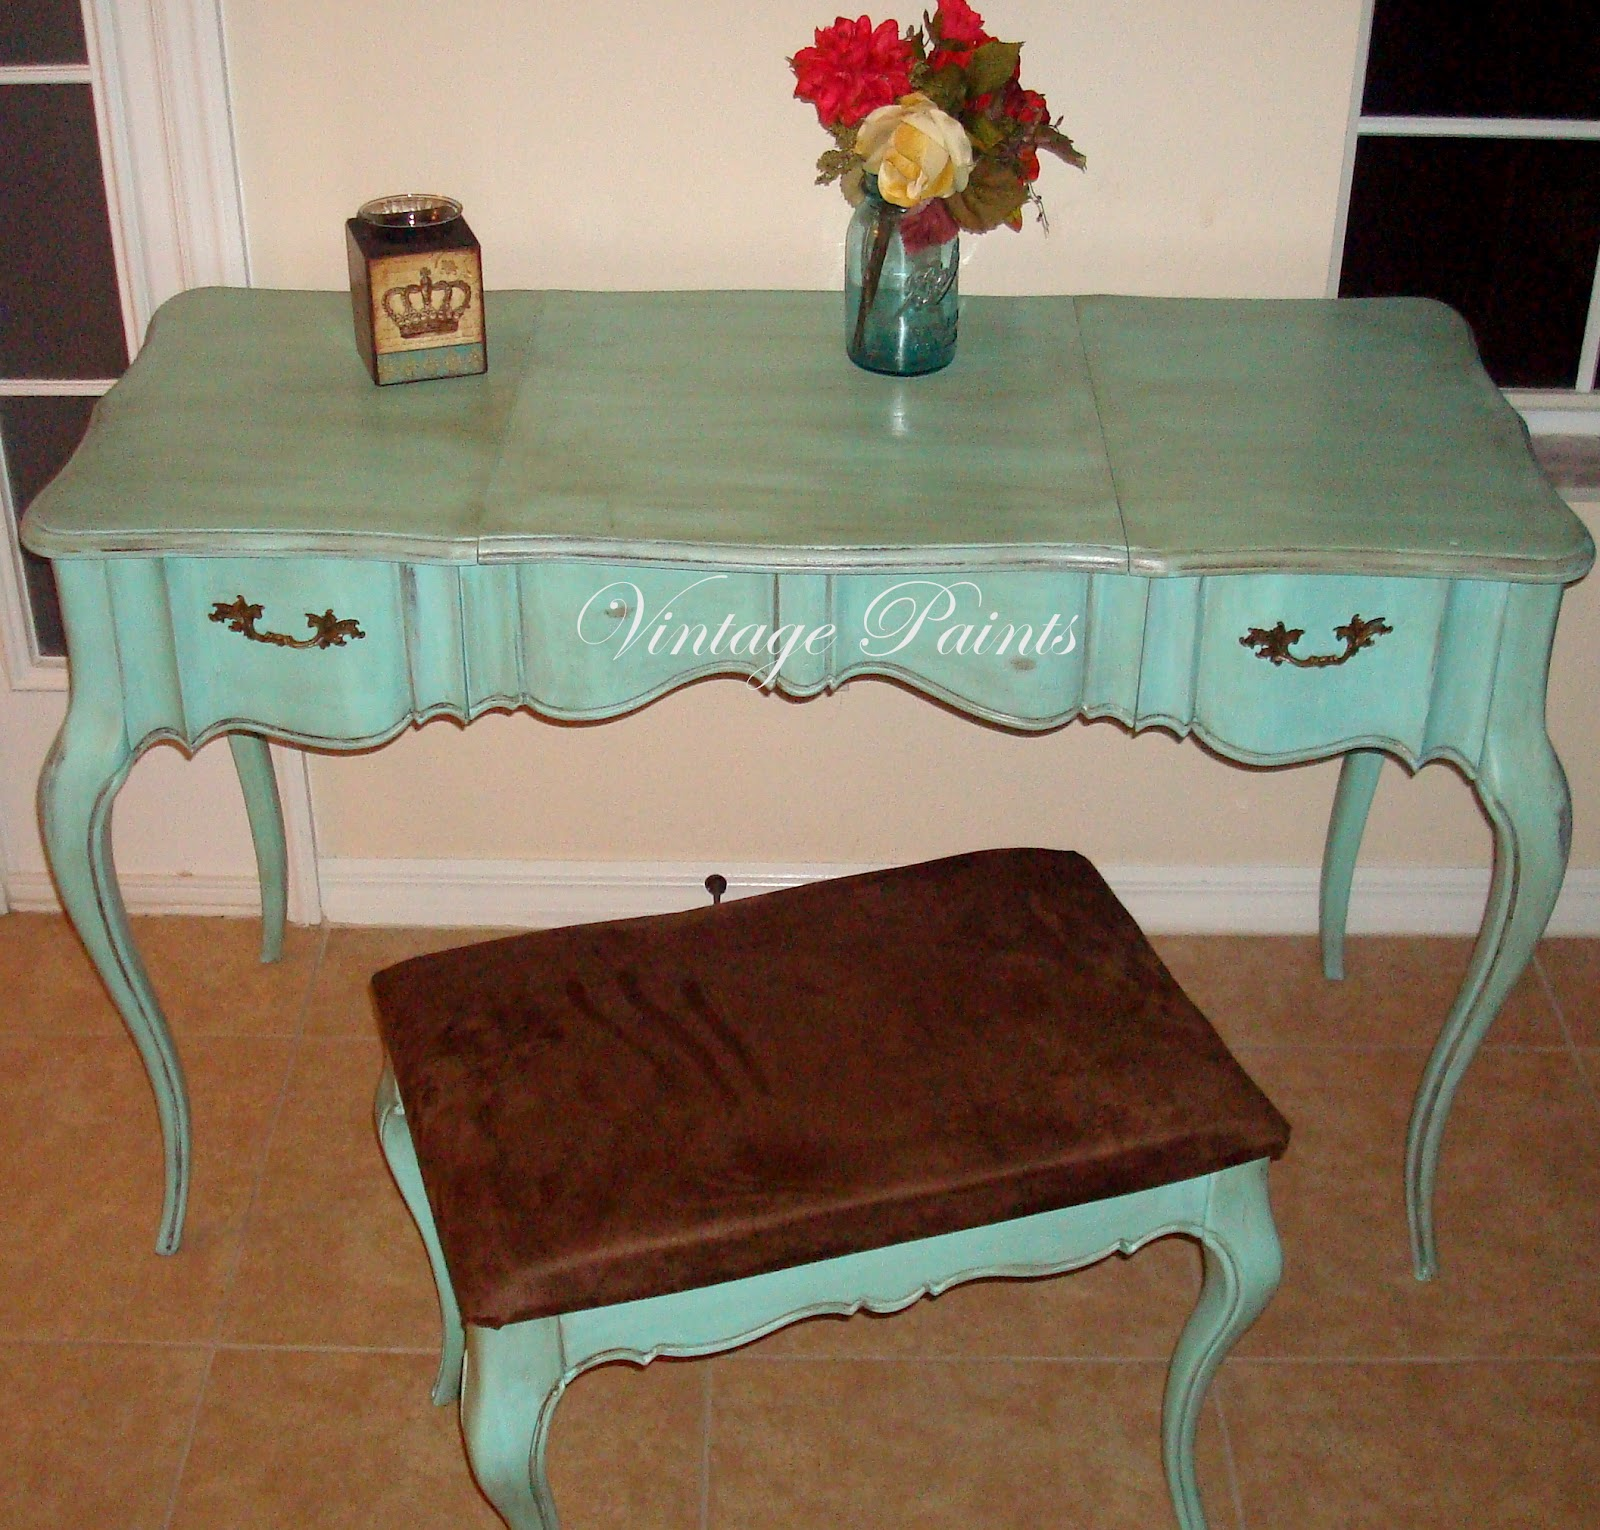 Turquoise vanity set hard knocks weekend vintage paints i did my best and matched it to a color called aqueductwhich is a soft greenish turquoise it would be pretty difficult to make this vanity set geotapseo Images